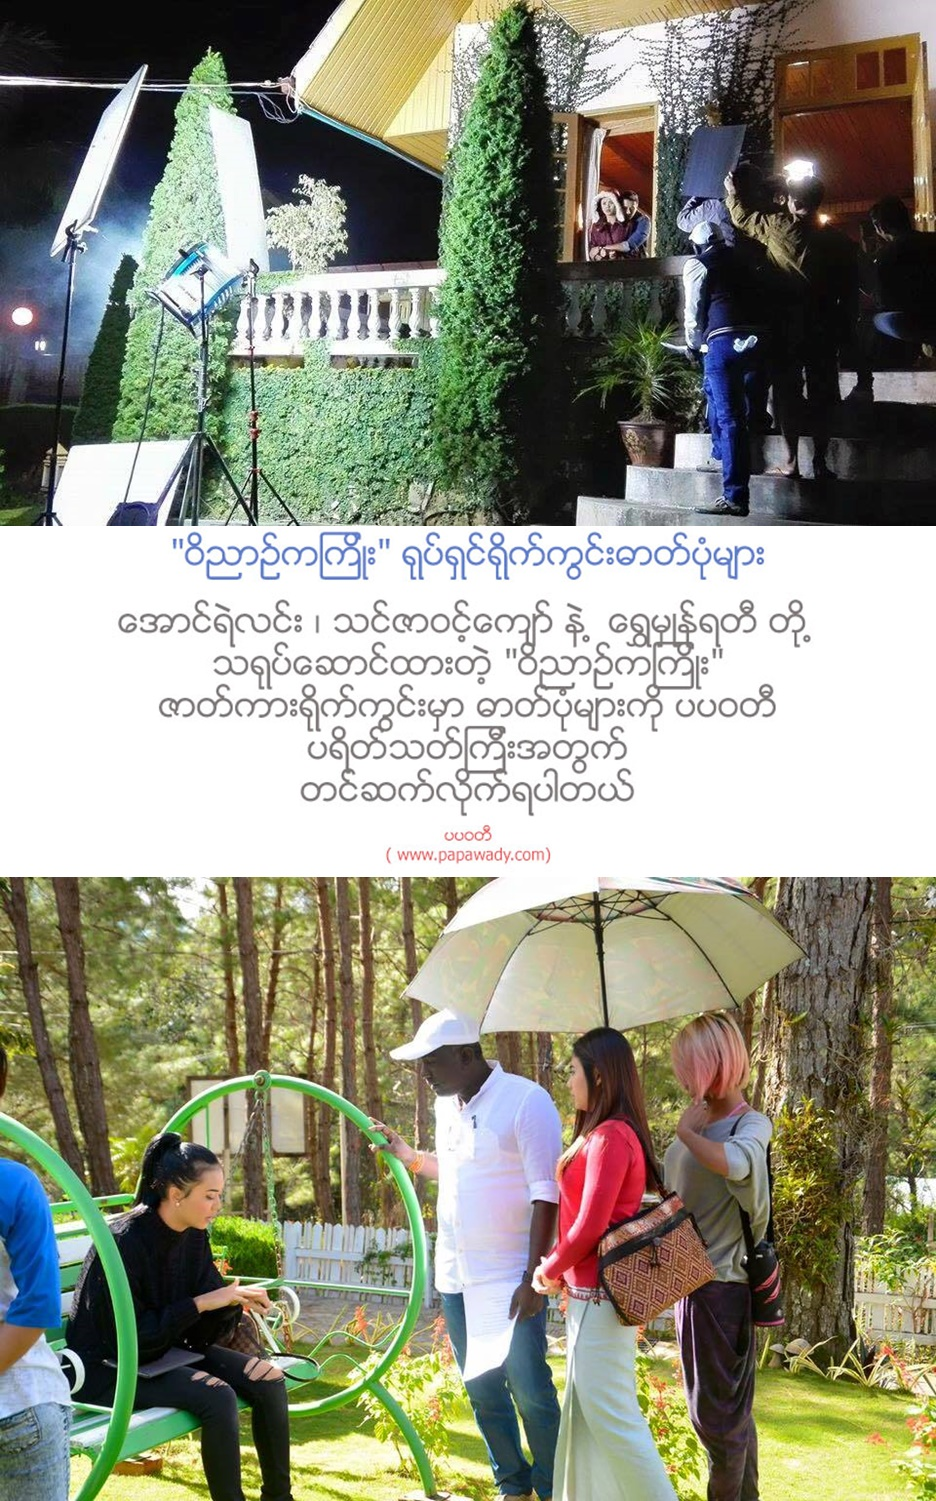 Winyin Kakyo Movie - Behind the Scenes (Aung Ye Linn , Thinzar Wint Kyaw and Shwe Mhone Ya Ti )